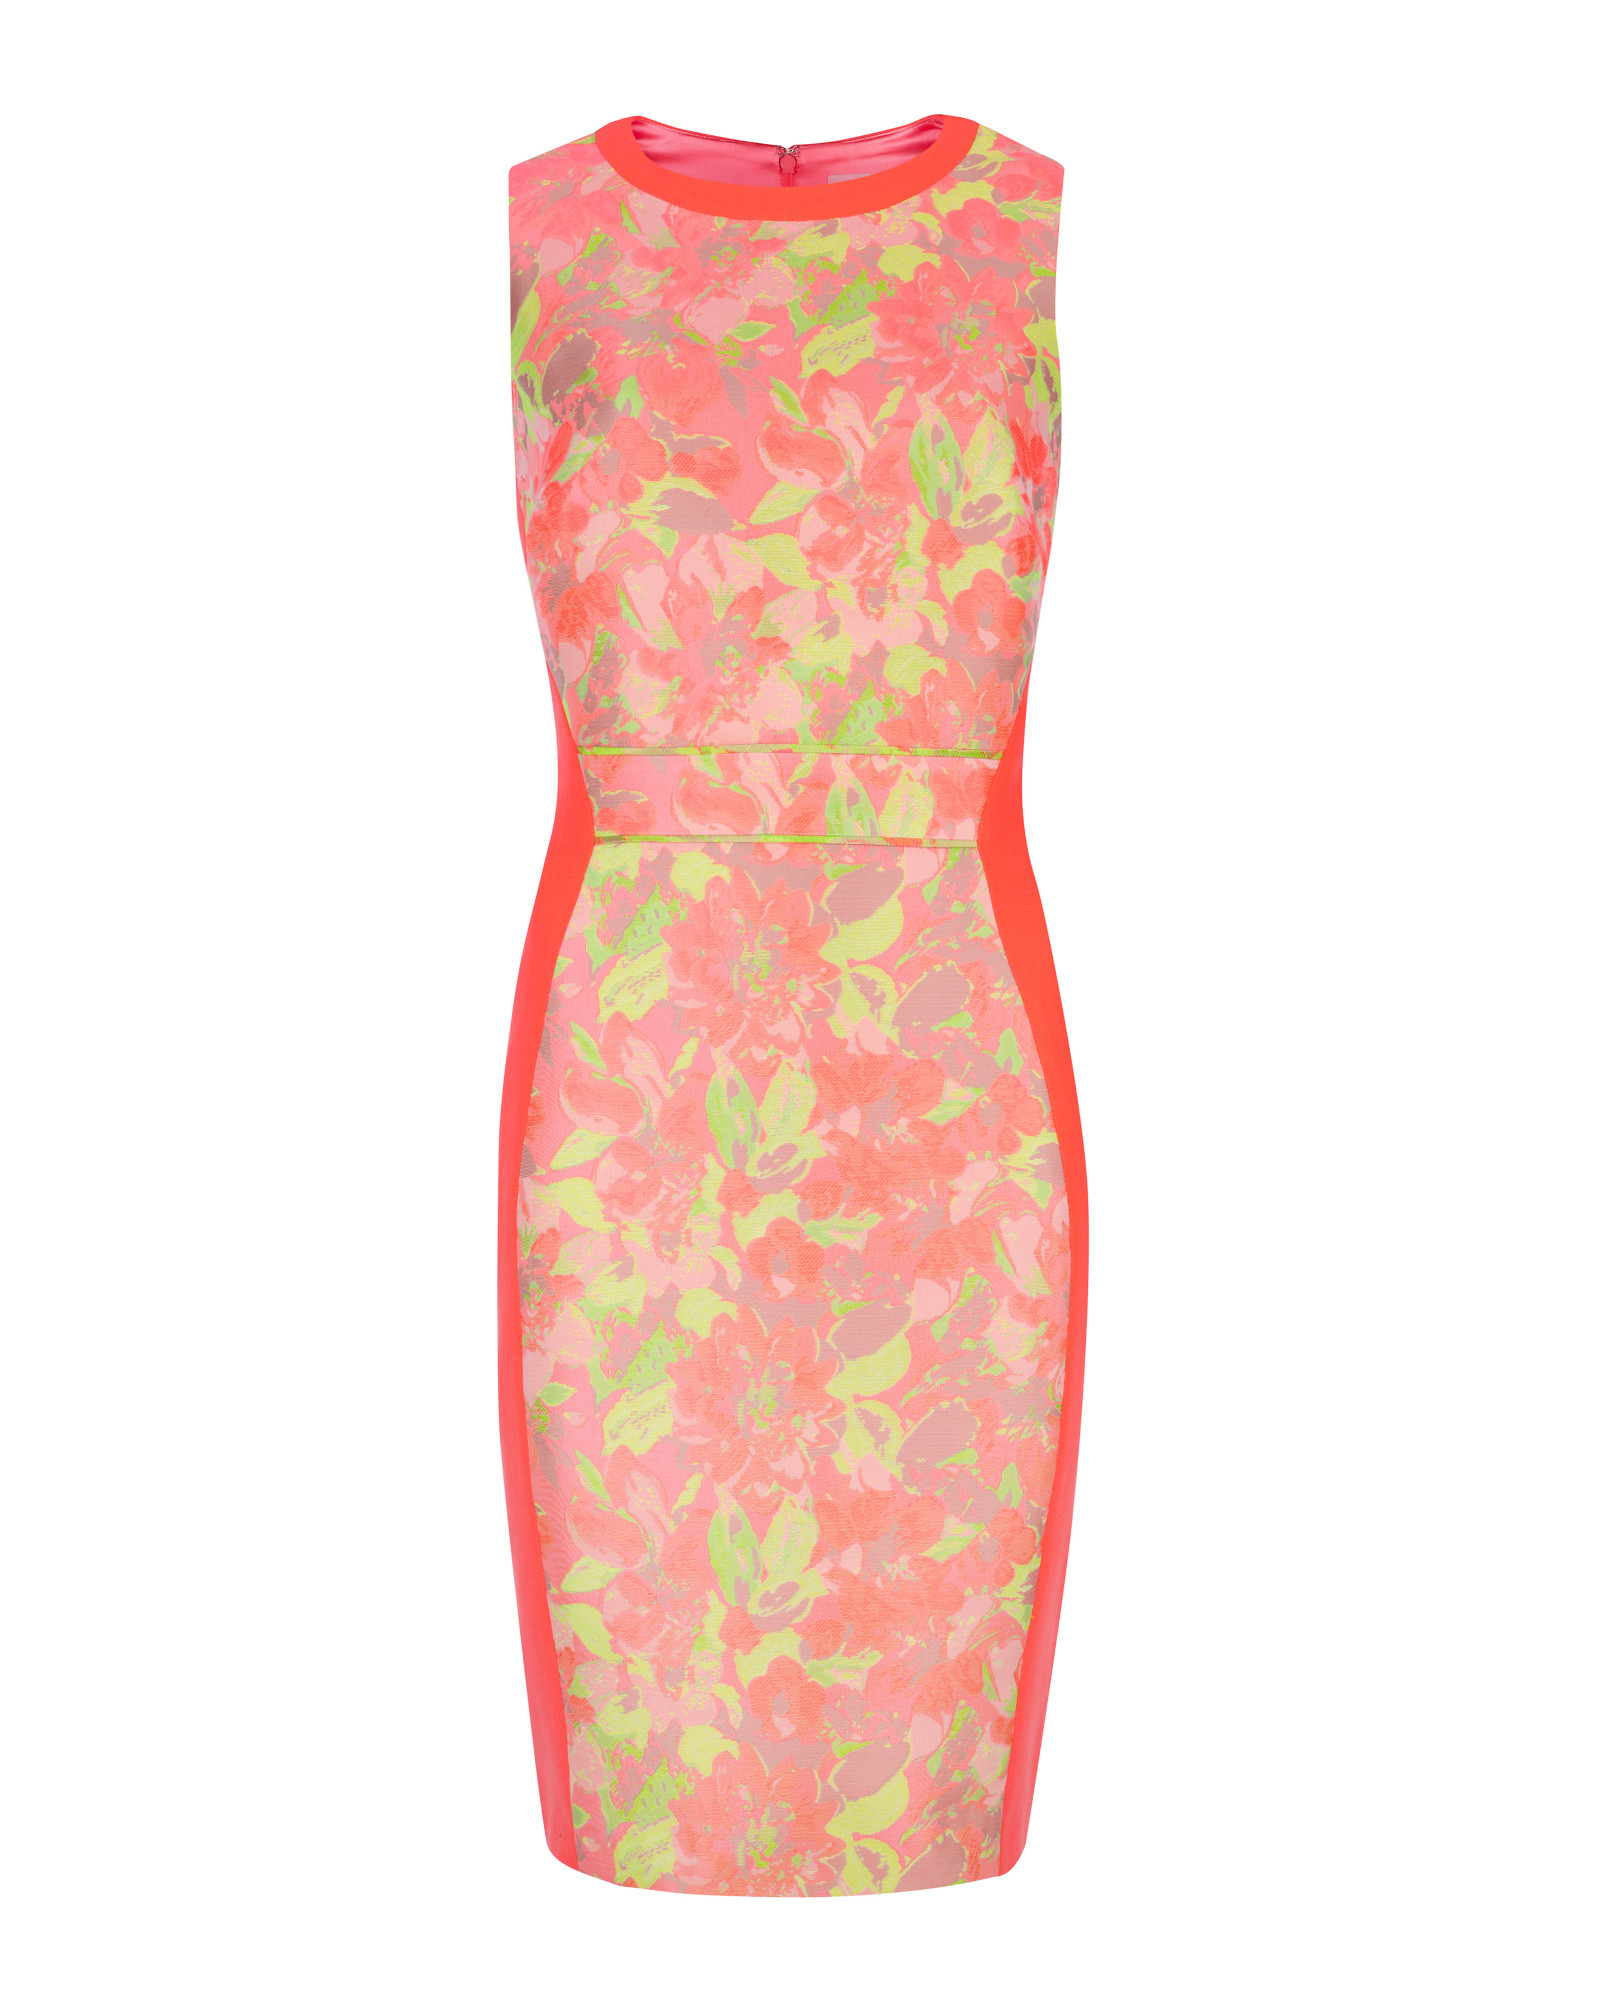 5f1a75ecb Lyst - Ted Baker Abenony Sleeveless Jacquard Dress in Pink